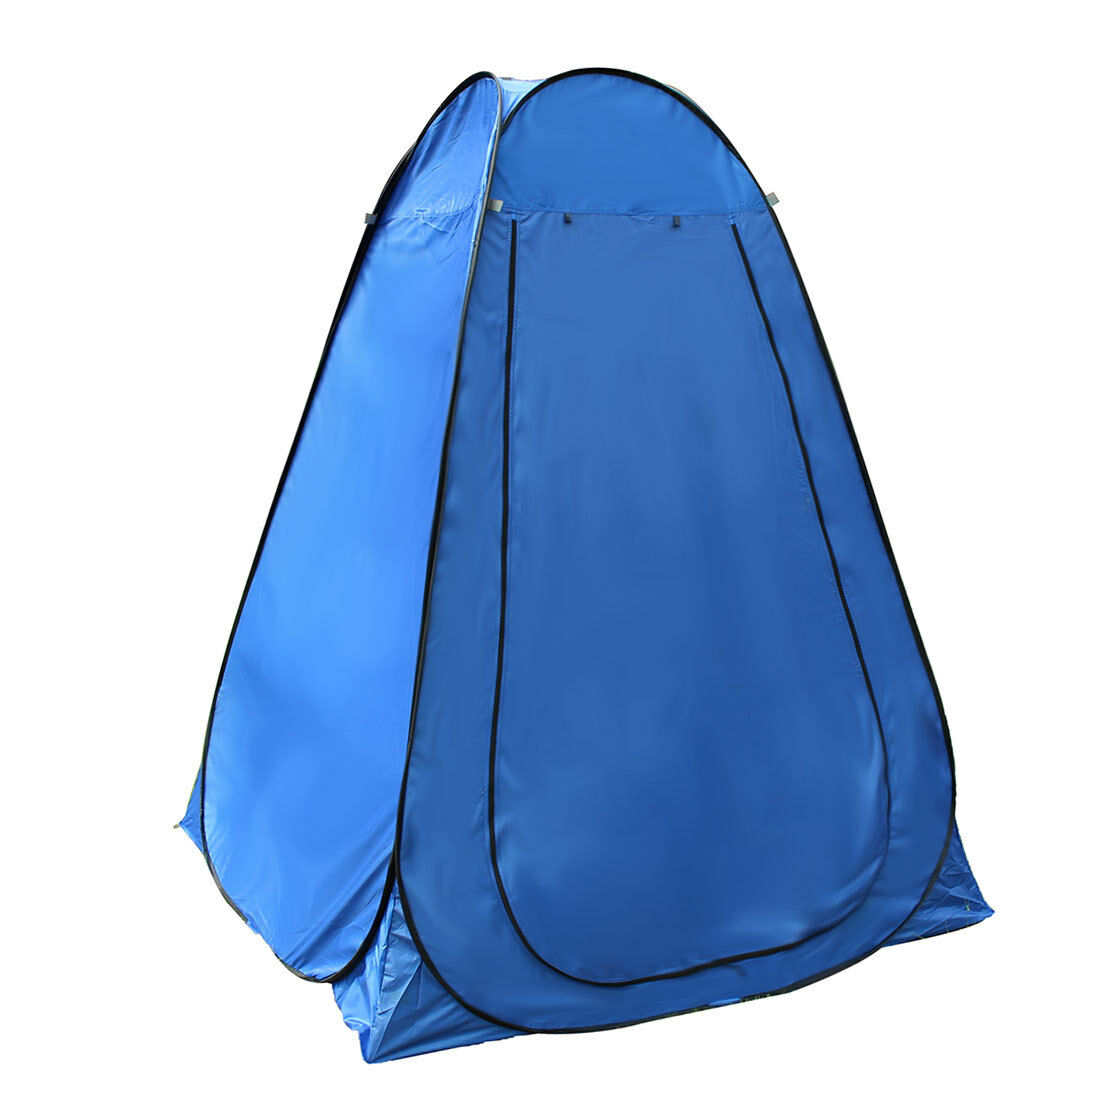 New Portable Instant Pop Up Outdoor Camping Shower Tent Toilet with Carry Bag